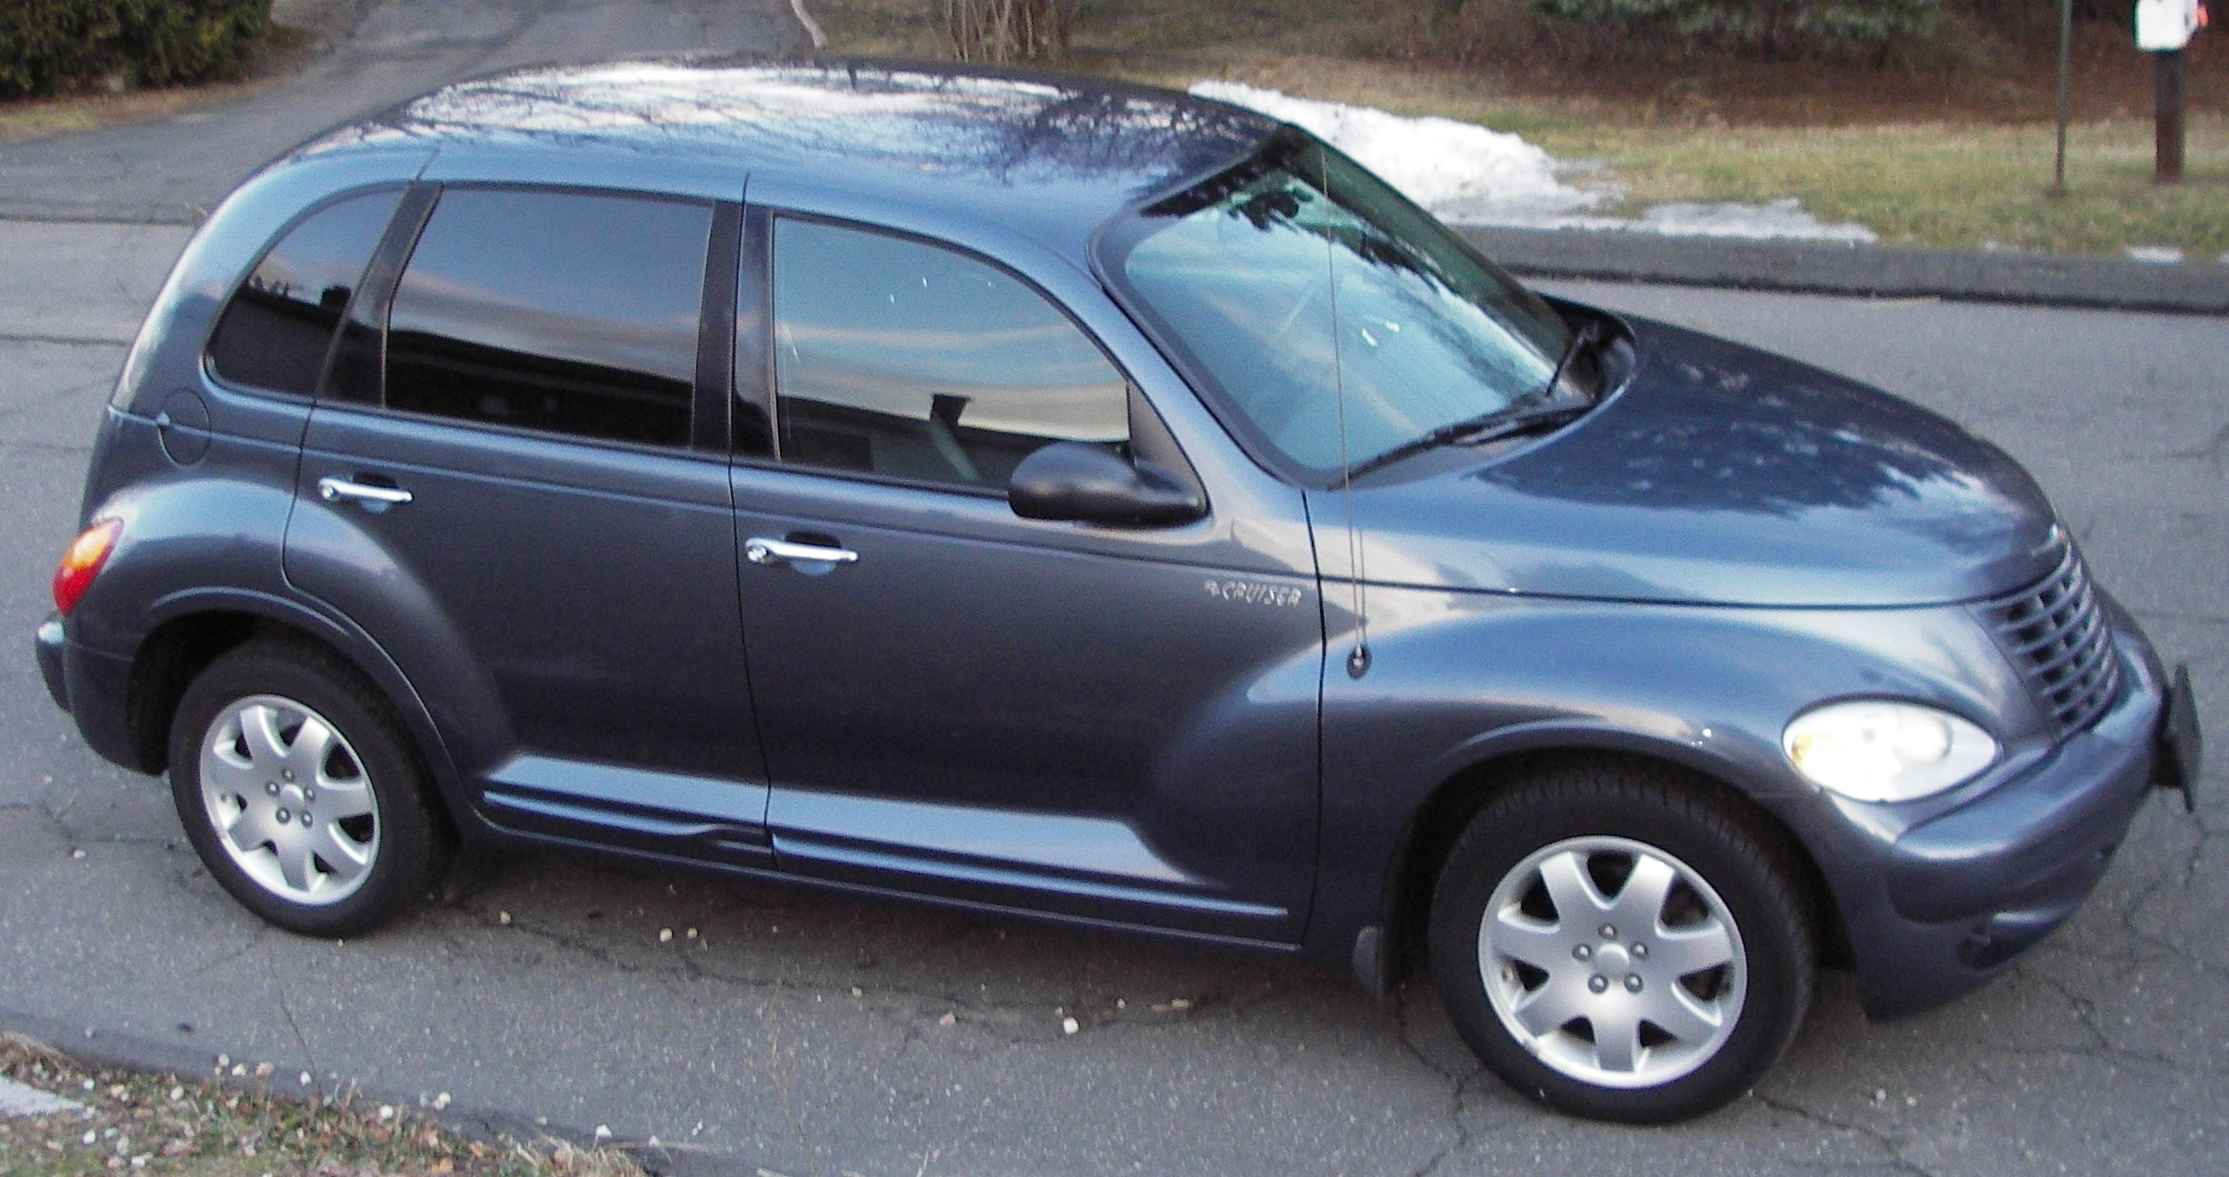 2003 chrysler pt cruiser information and photos zombiedrive. Black Bedroom Furniture Sets. Home Design Ideas